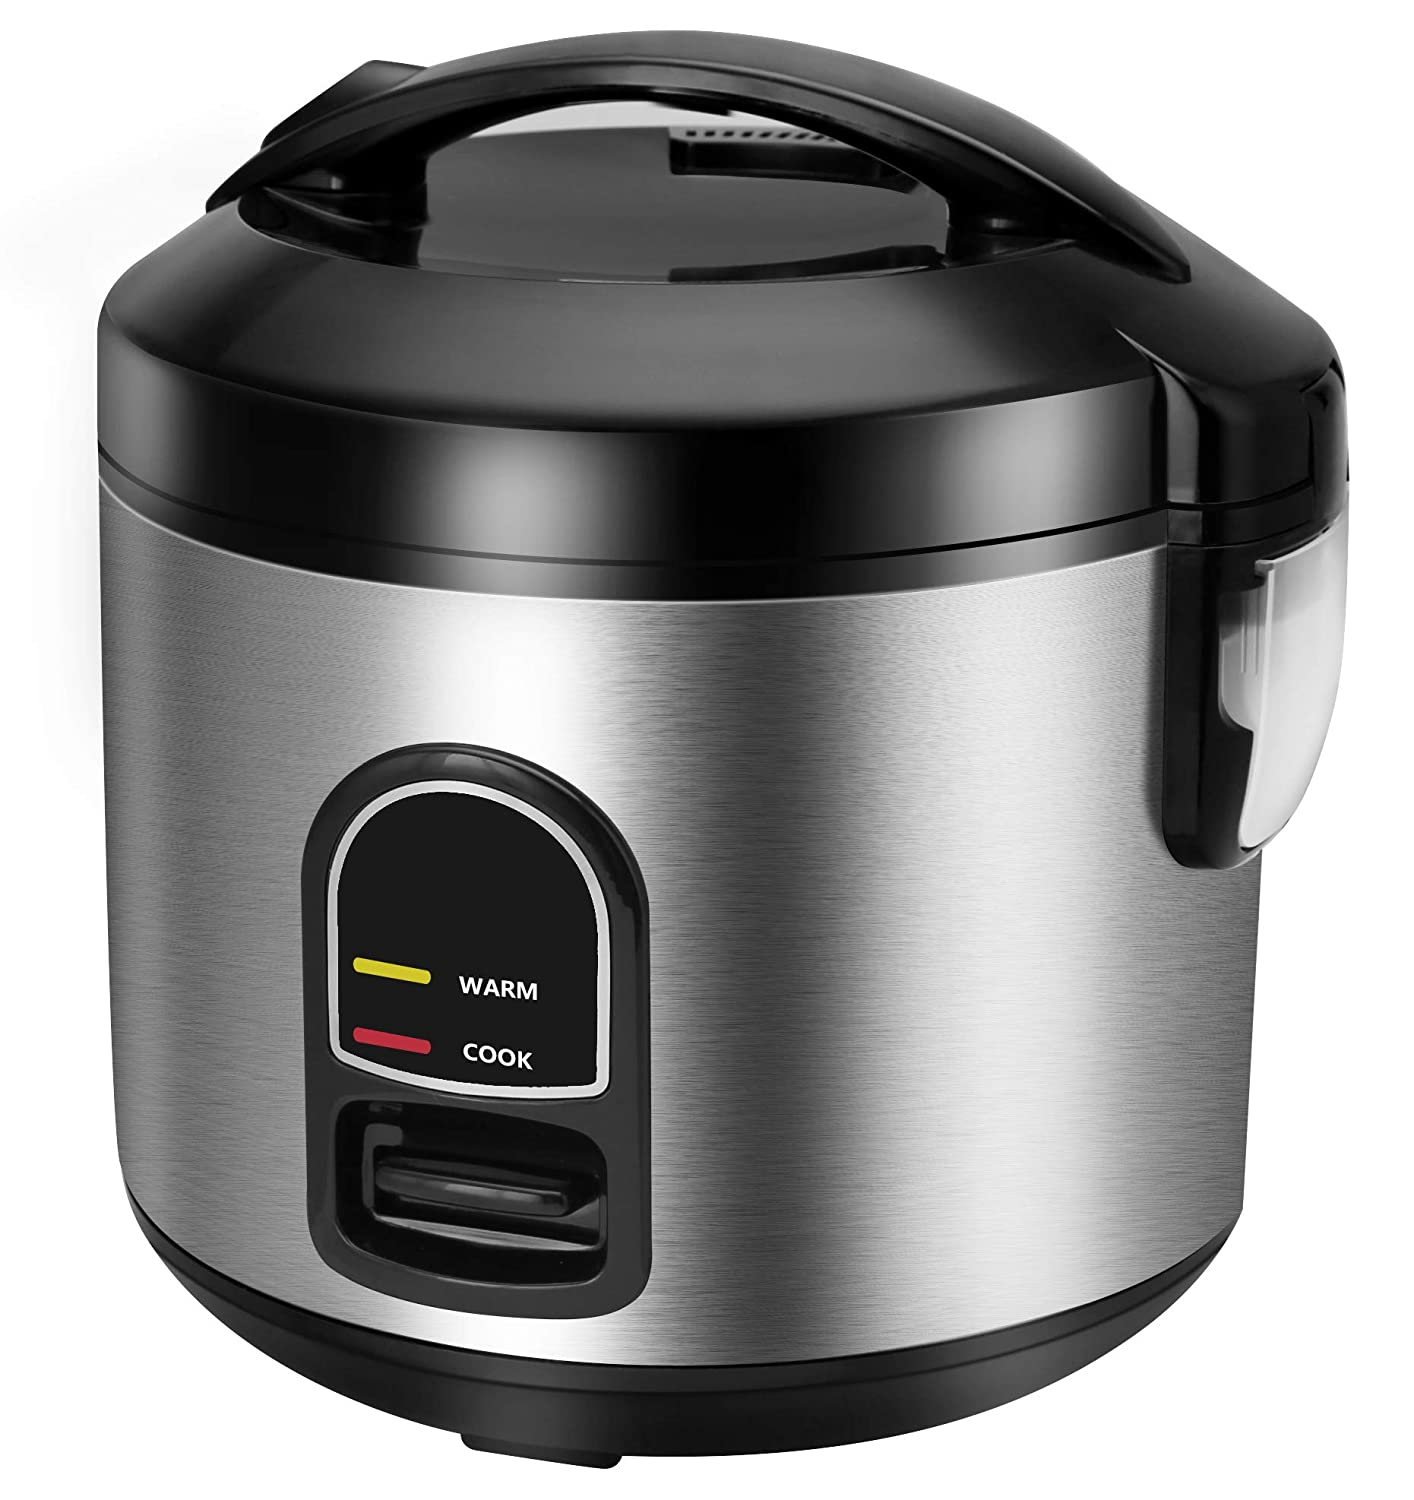 Electric Rice Cooker Food Steamer, CUSINAID Smart 10 cup Rice Cooker Steamer with Automatic Keep Warm Function, Perfect for Soups, Stews, Grains & Oatmeal (1.8 Liters)